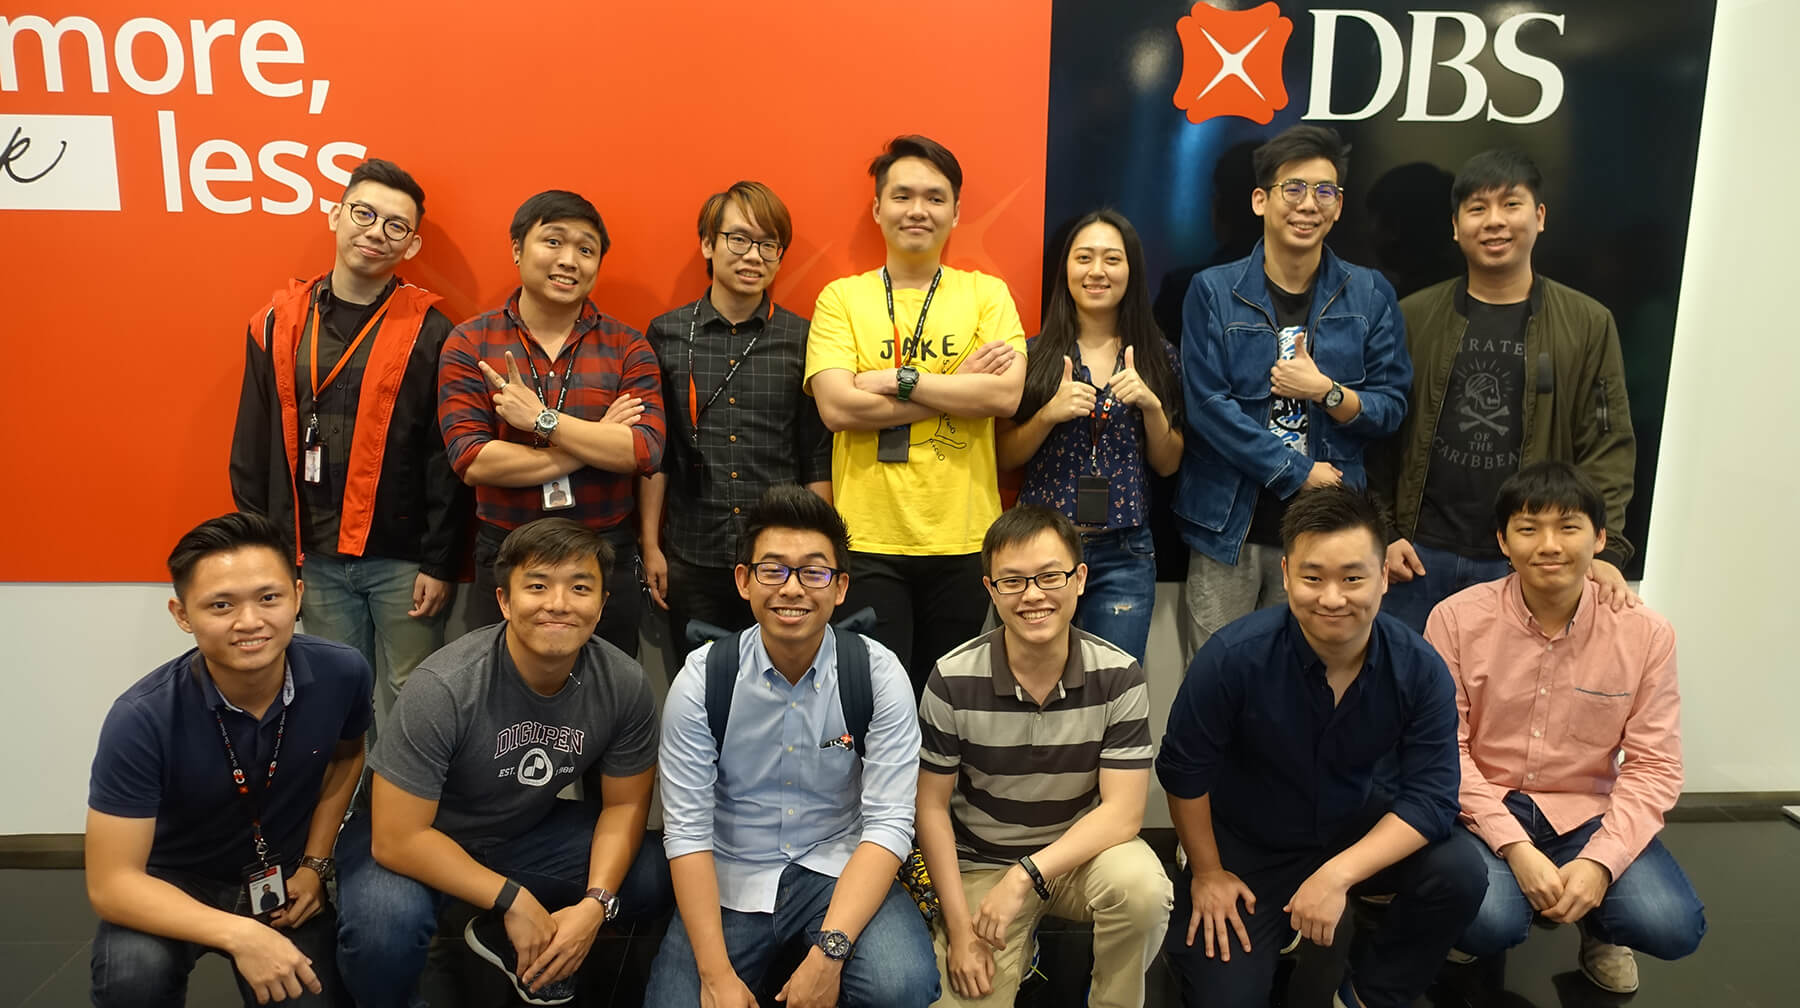 Group photo of 13 DigiPen (Singapore) graduates at DBS Bank